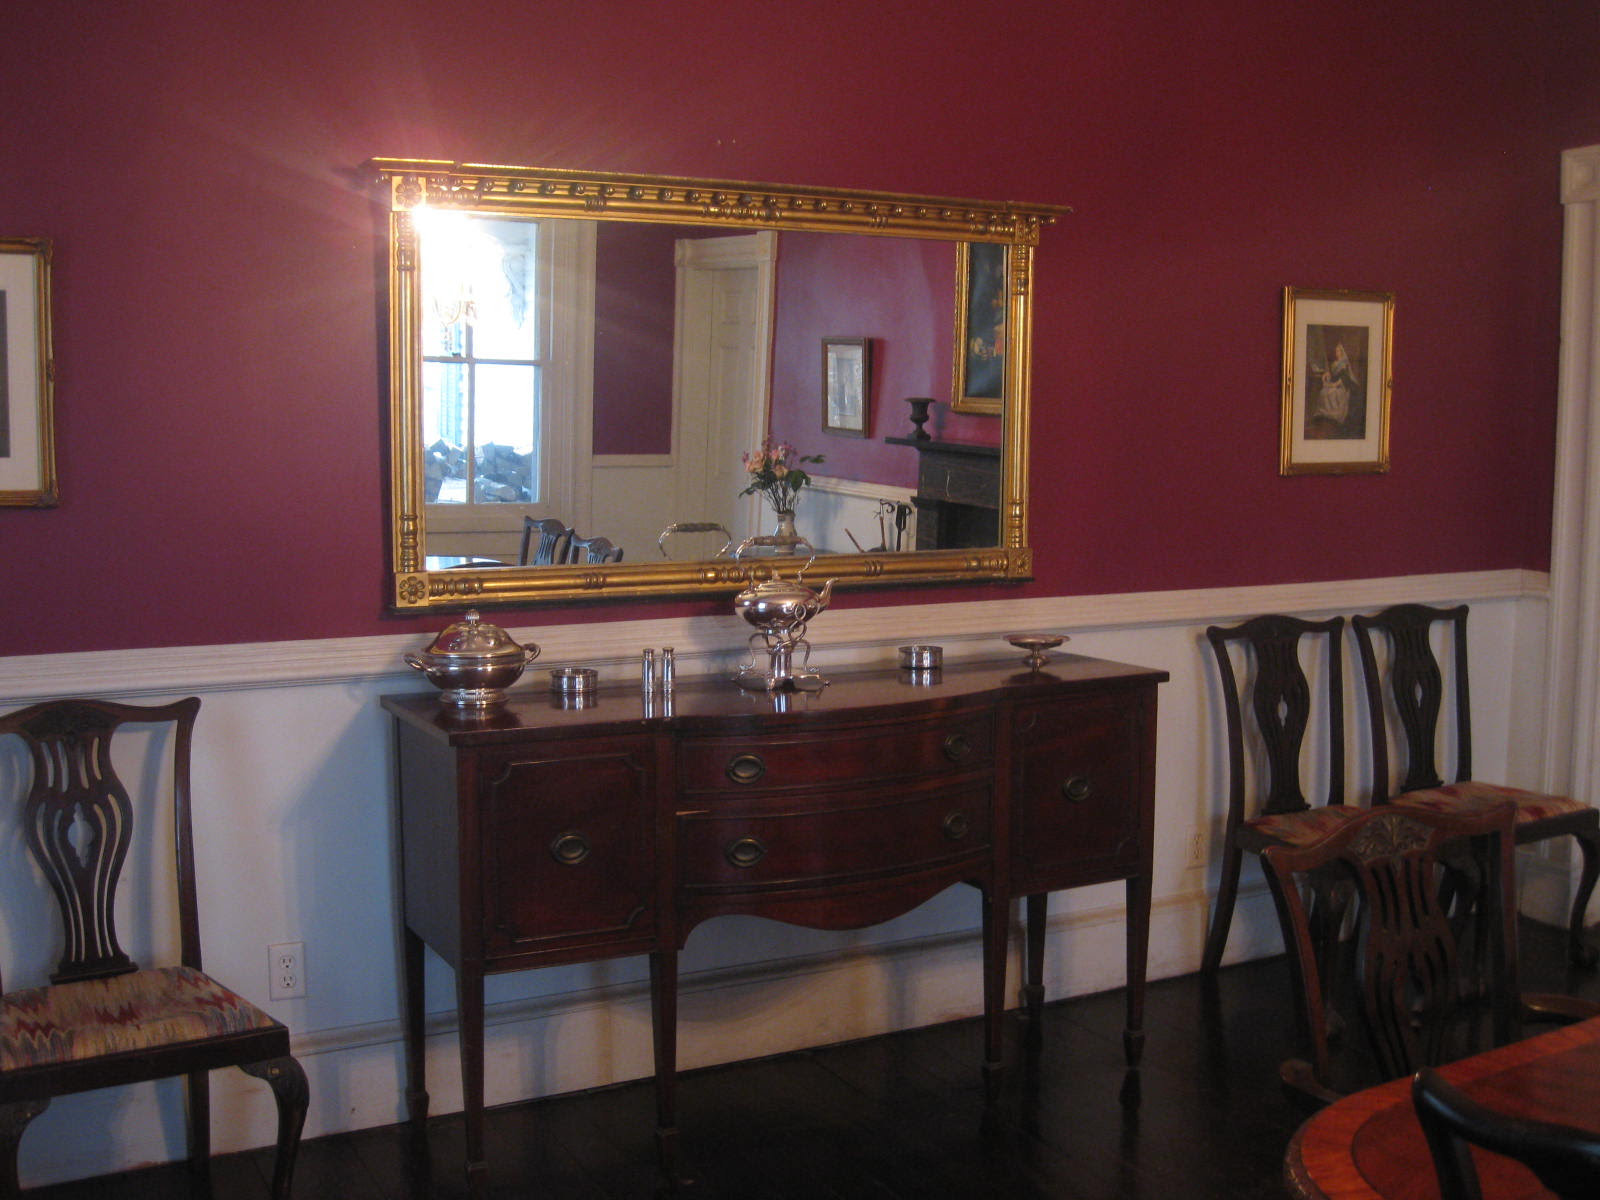 House Tour, Part 4: The Dining Room